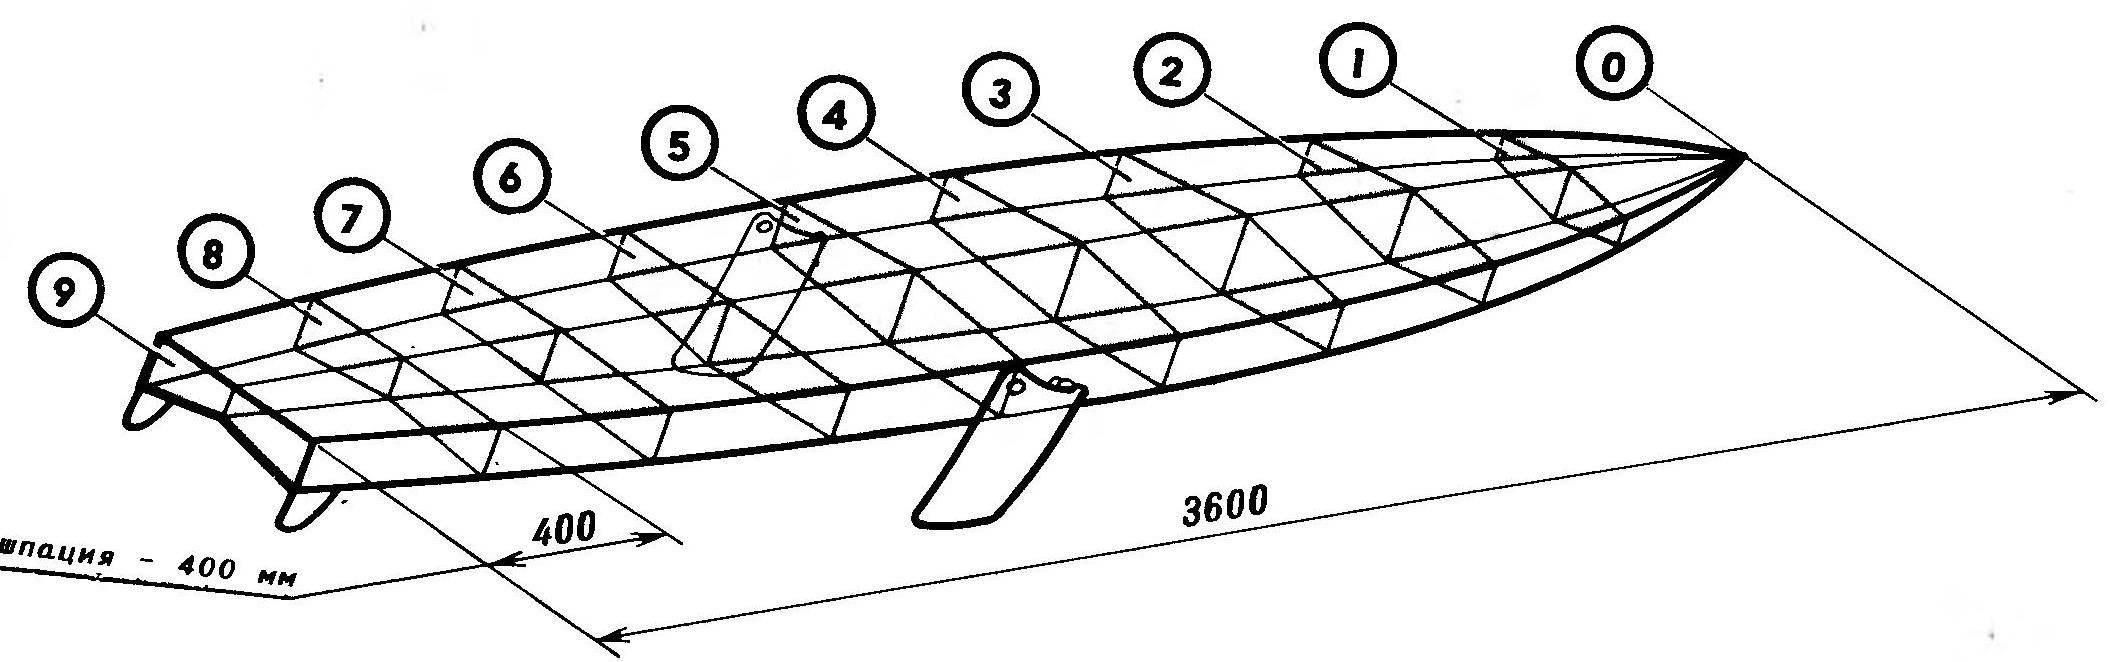 R and p. 2. Scheme for the construction of the hull of a sailing Board.